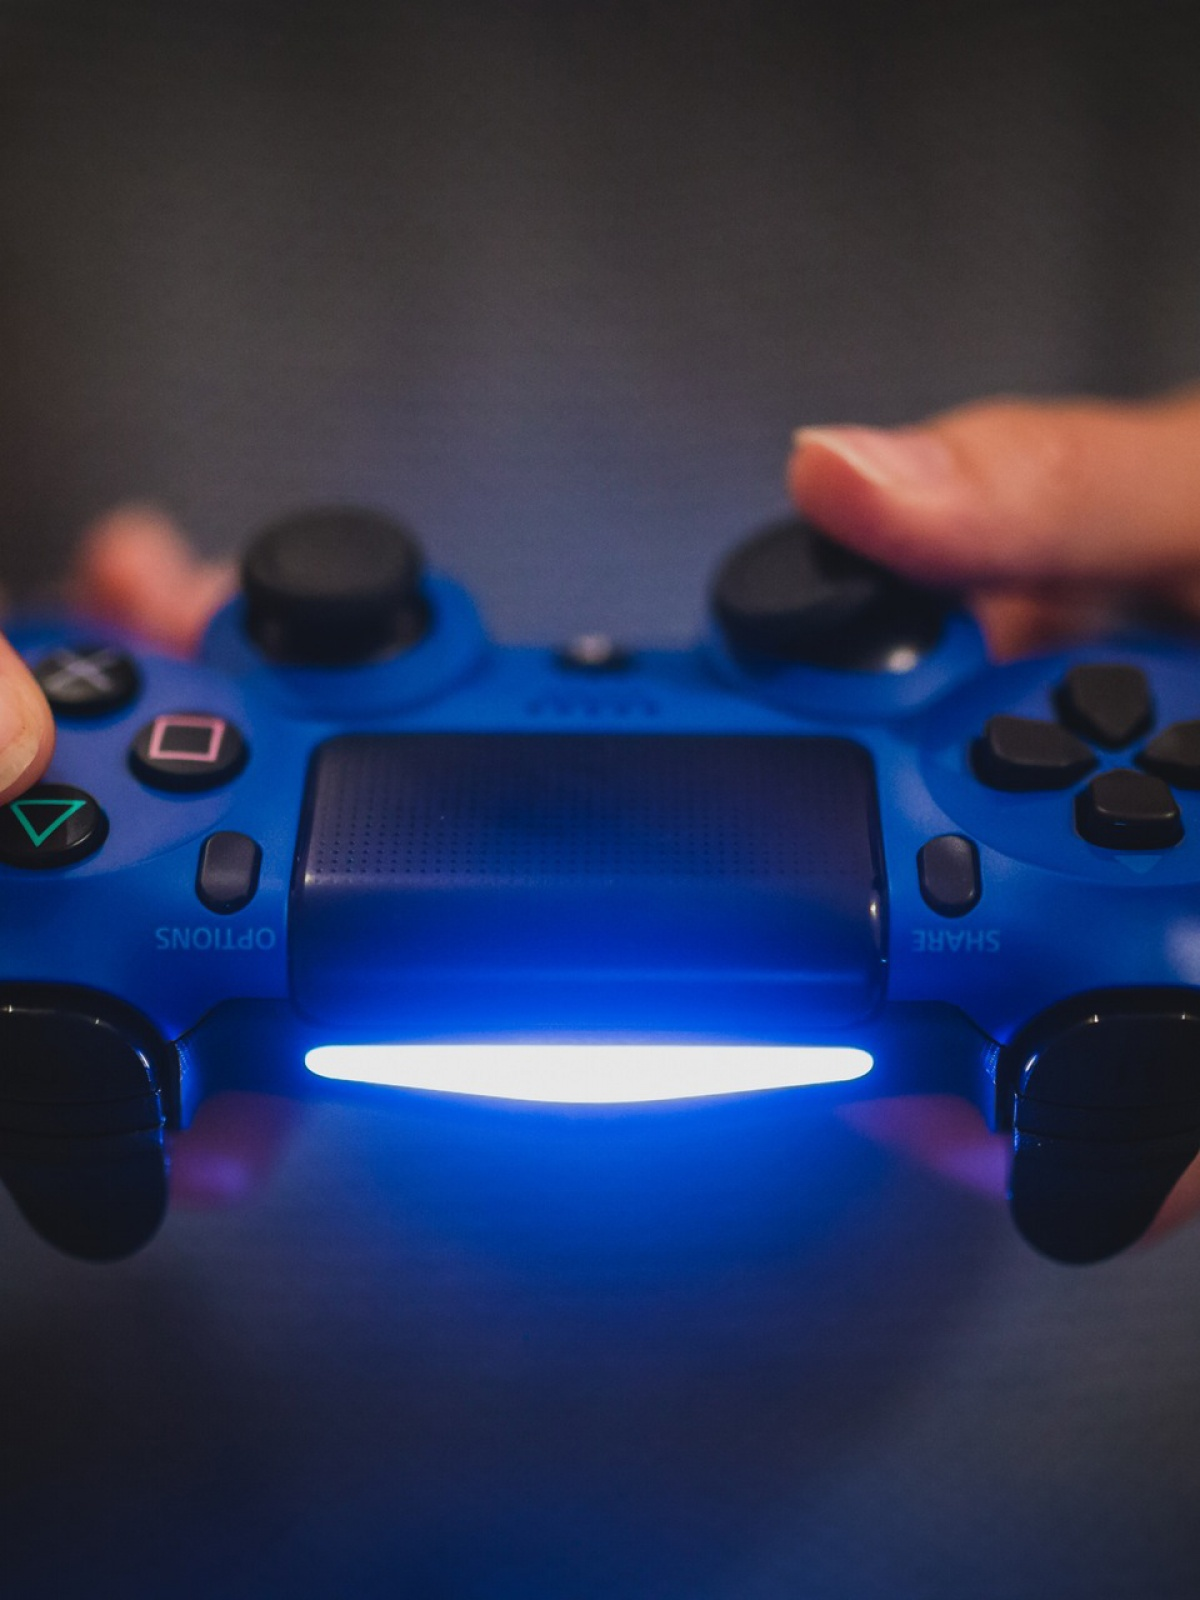 Person Holding Blue Sony Ps4 Controller Hd Wallpaper Video